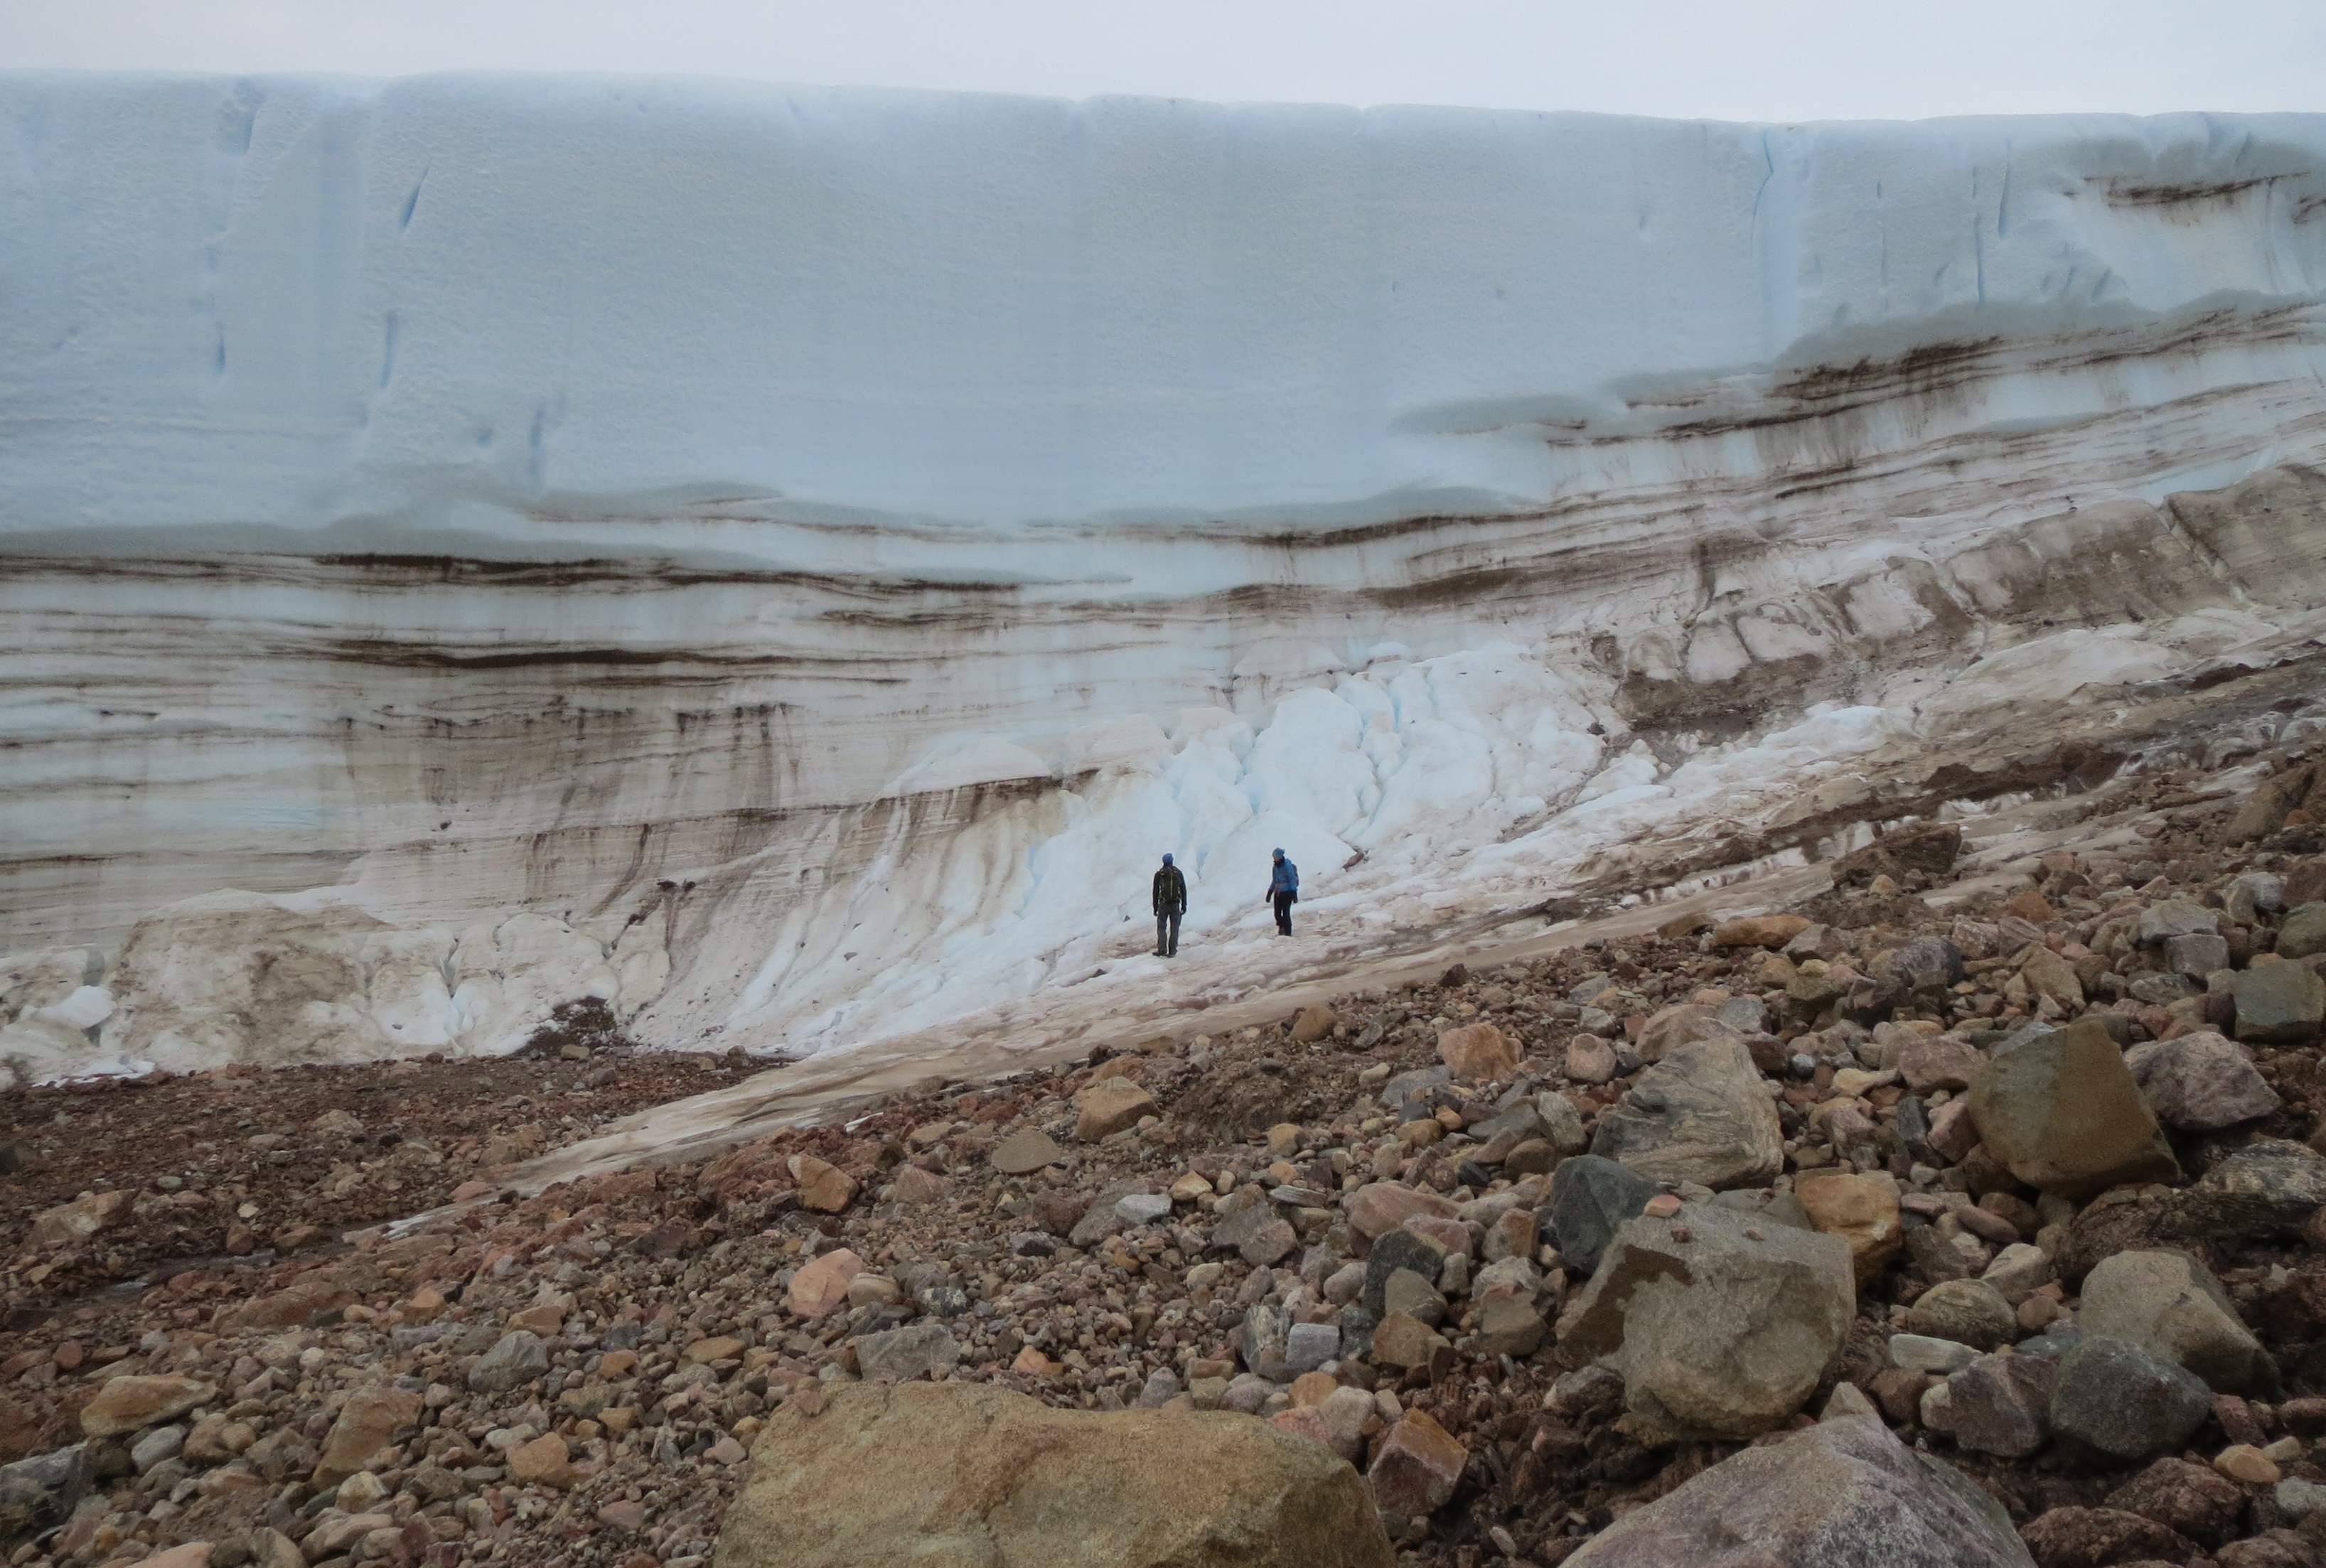 The analysis of lake mud located just beyond the northwest edge of the Greenland Ice Sheet has revealed new clues about the region's changing climate that may provide insight into how ice sheets will continue to respond to human-induced global warming today.